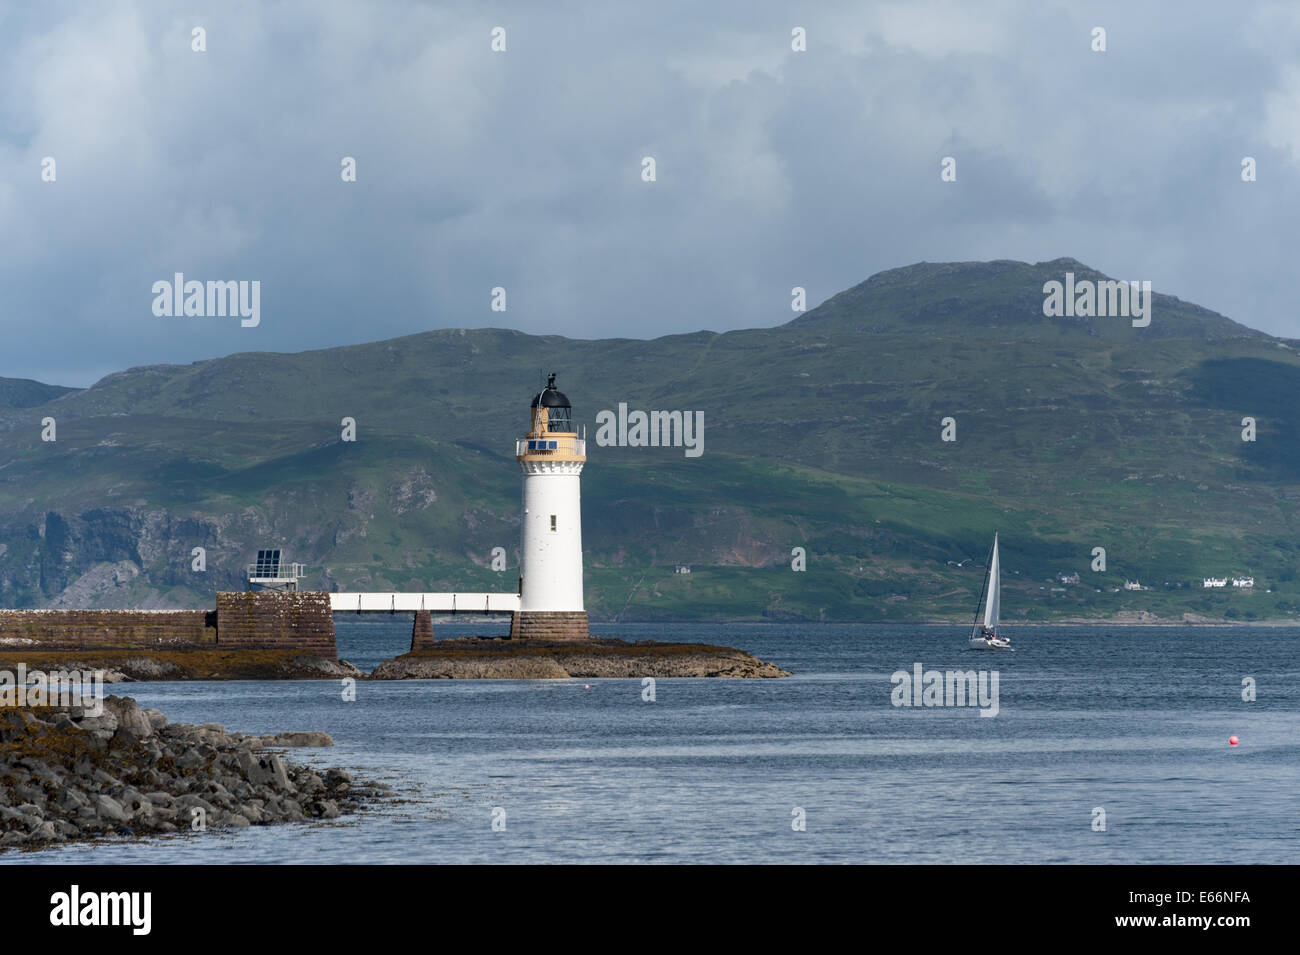 A view of Tobermory Lighthouse on the Isle of Mull in Scotland with Ardnamurchan in the background. Stock Photo